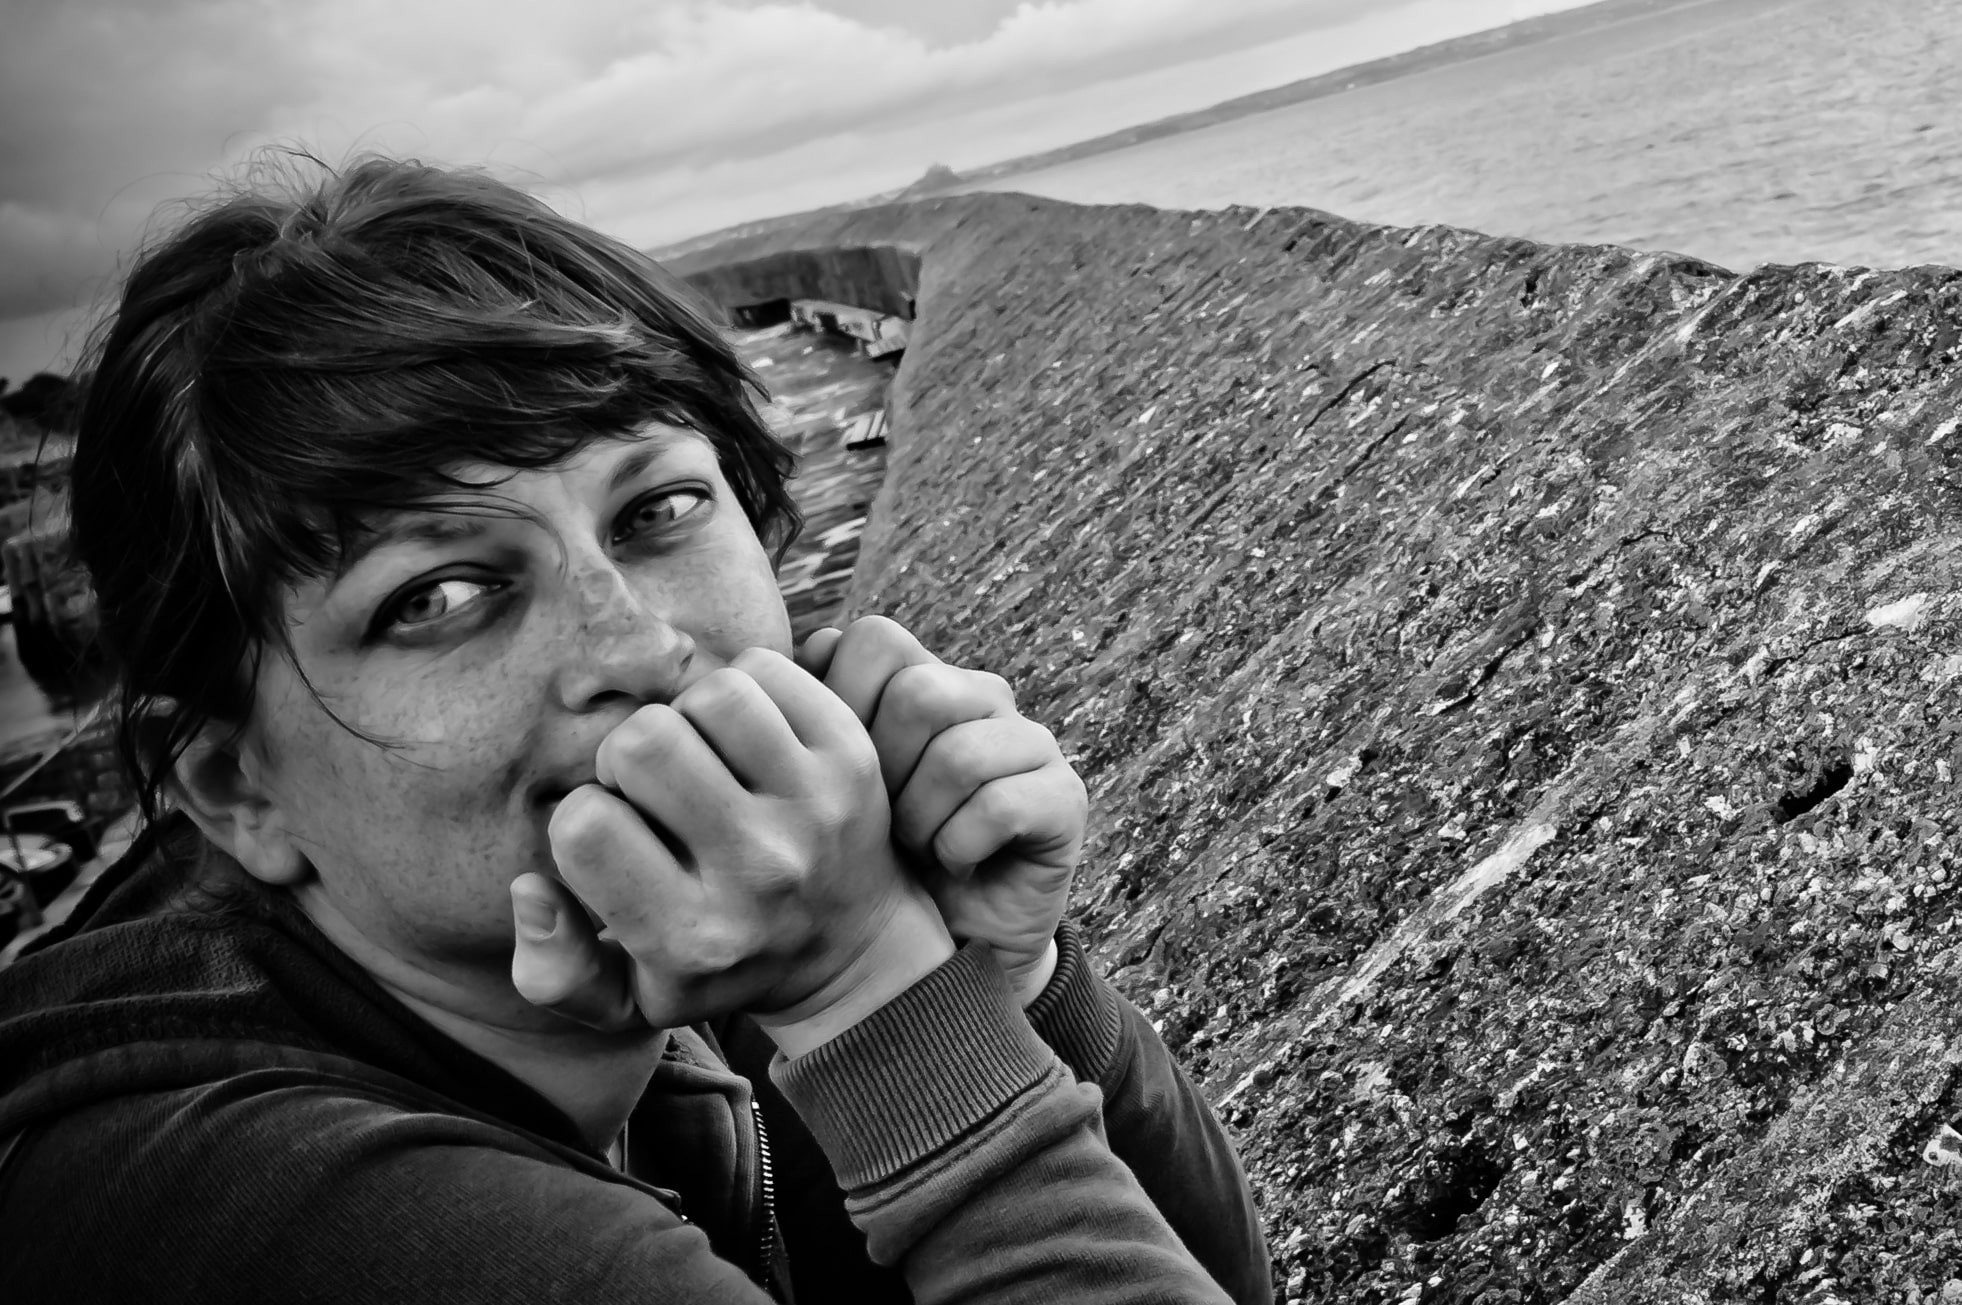 Portrait of me leaning on a sea wall with St Michael's Mount, Cornwall in the distance. My eyebrows have bald patches.